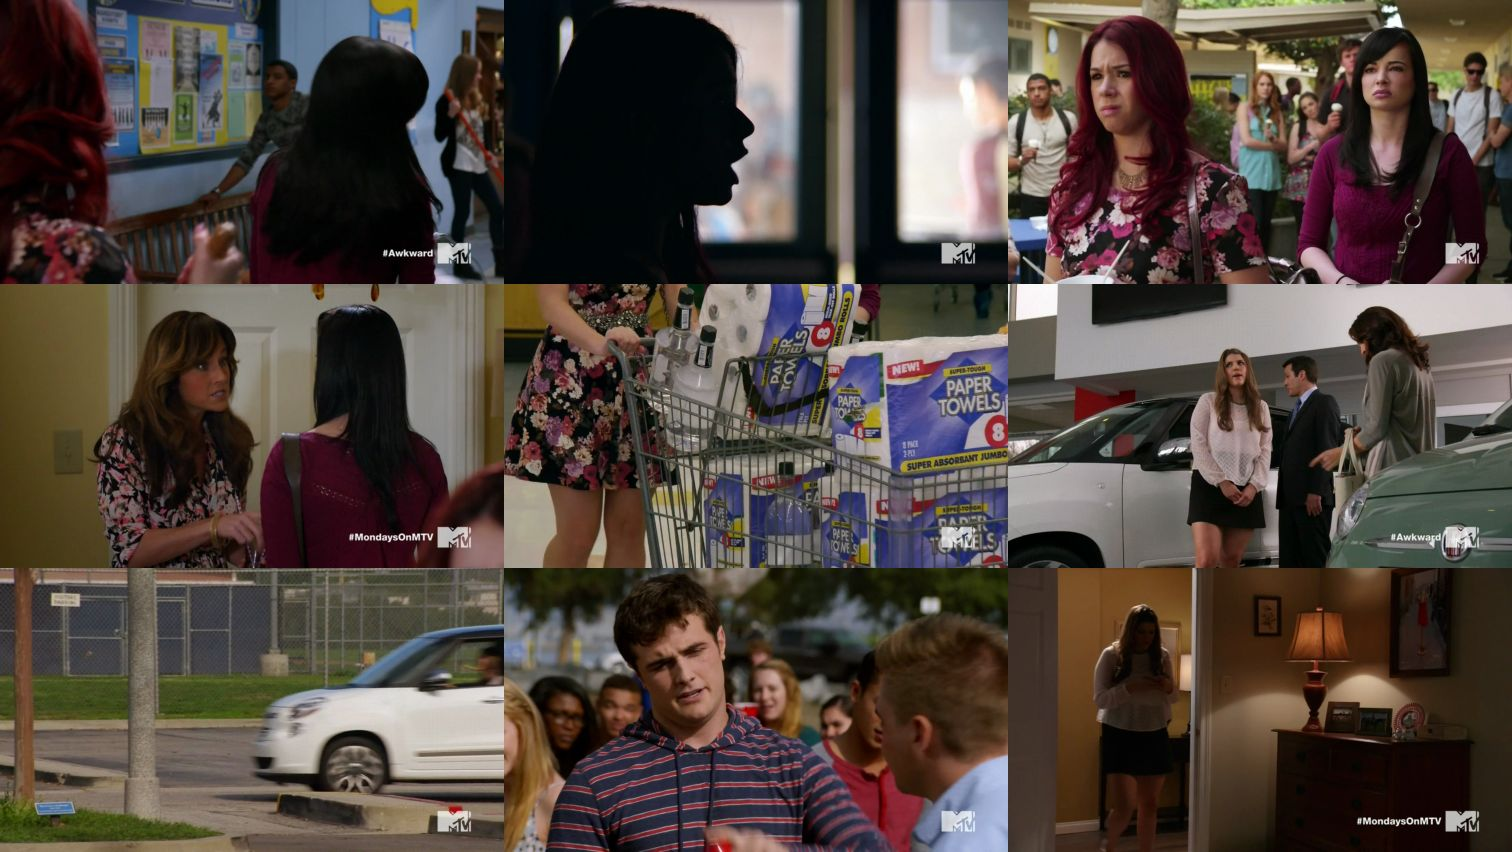 Awkward S05E02 HDTV x264-KILLERS [MP4+ MKV 720P]